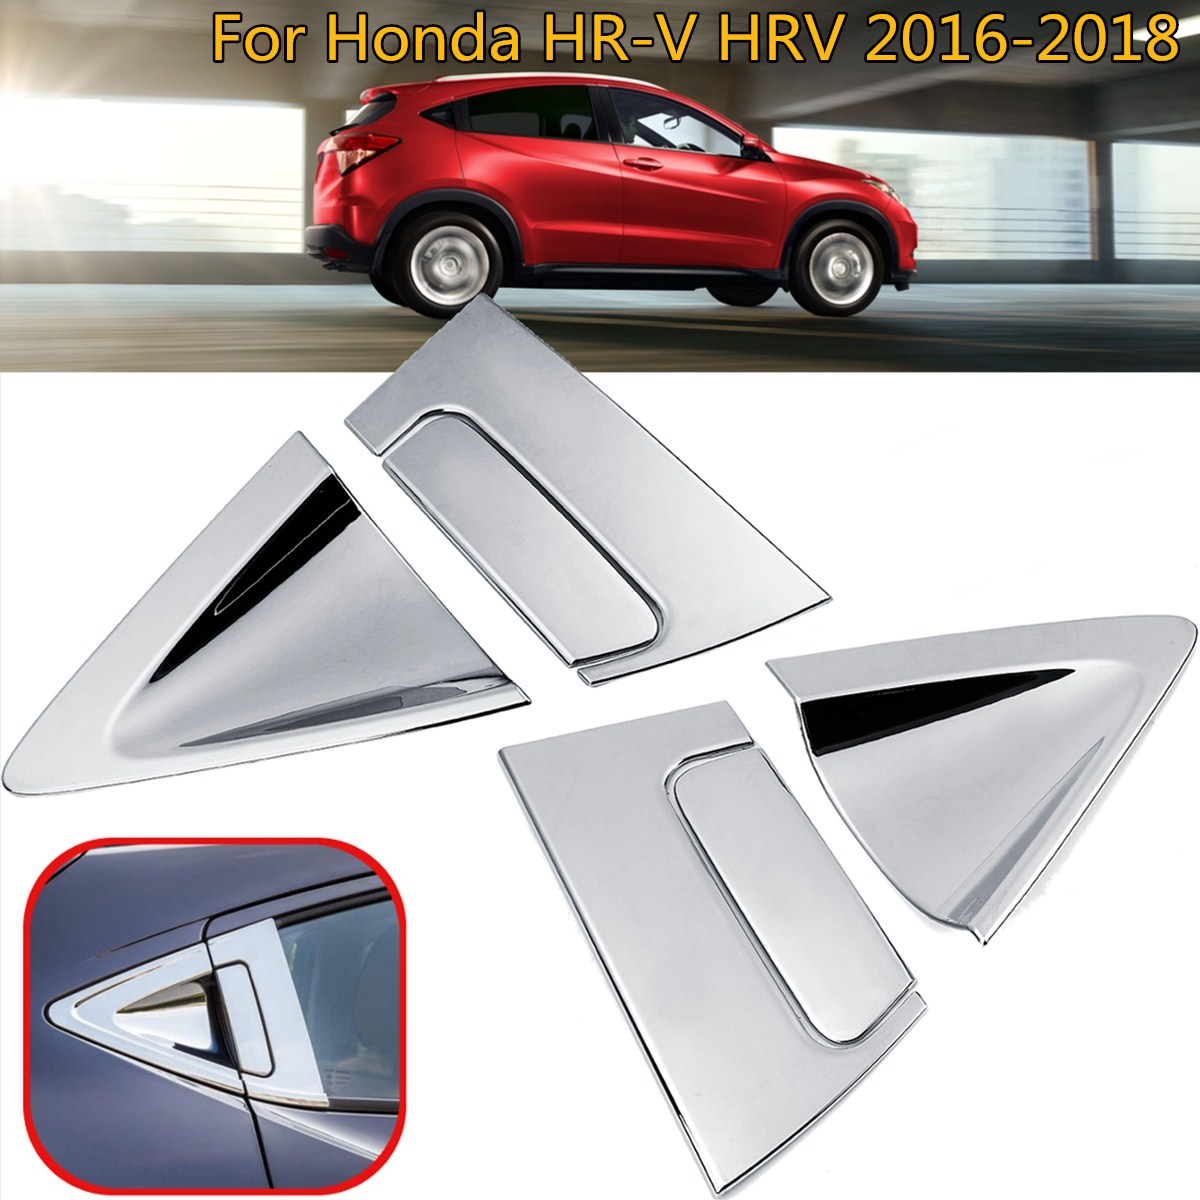 For <font><b>Honda</b></font> Vezel HR-V <font><b>HRV</b></font> 2016-2018 Car <font><b>Accessories</b></font> 6pcs ABS Chrome/Carbon fiber Side Rear Door Handle Bowl Cover Insert Trim image